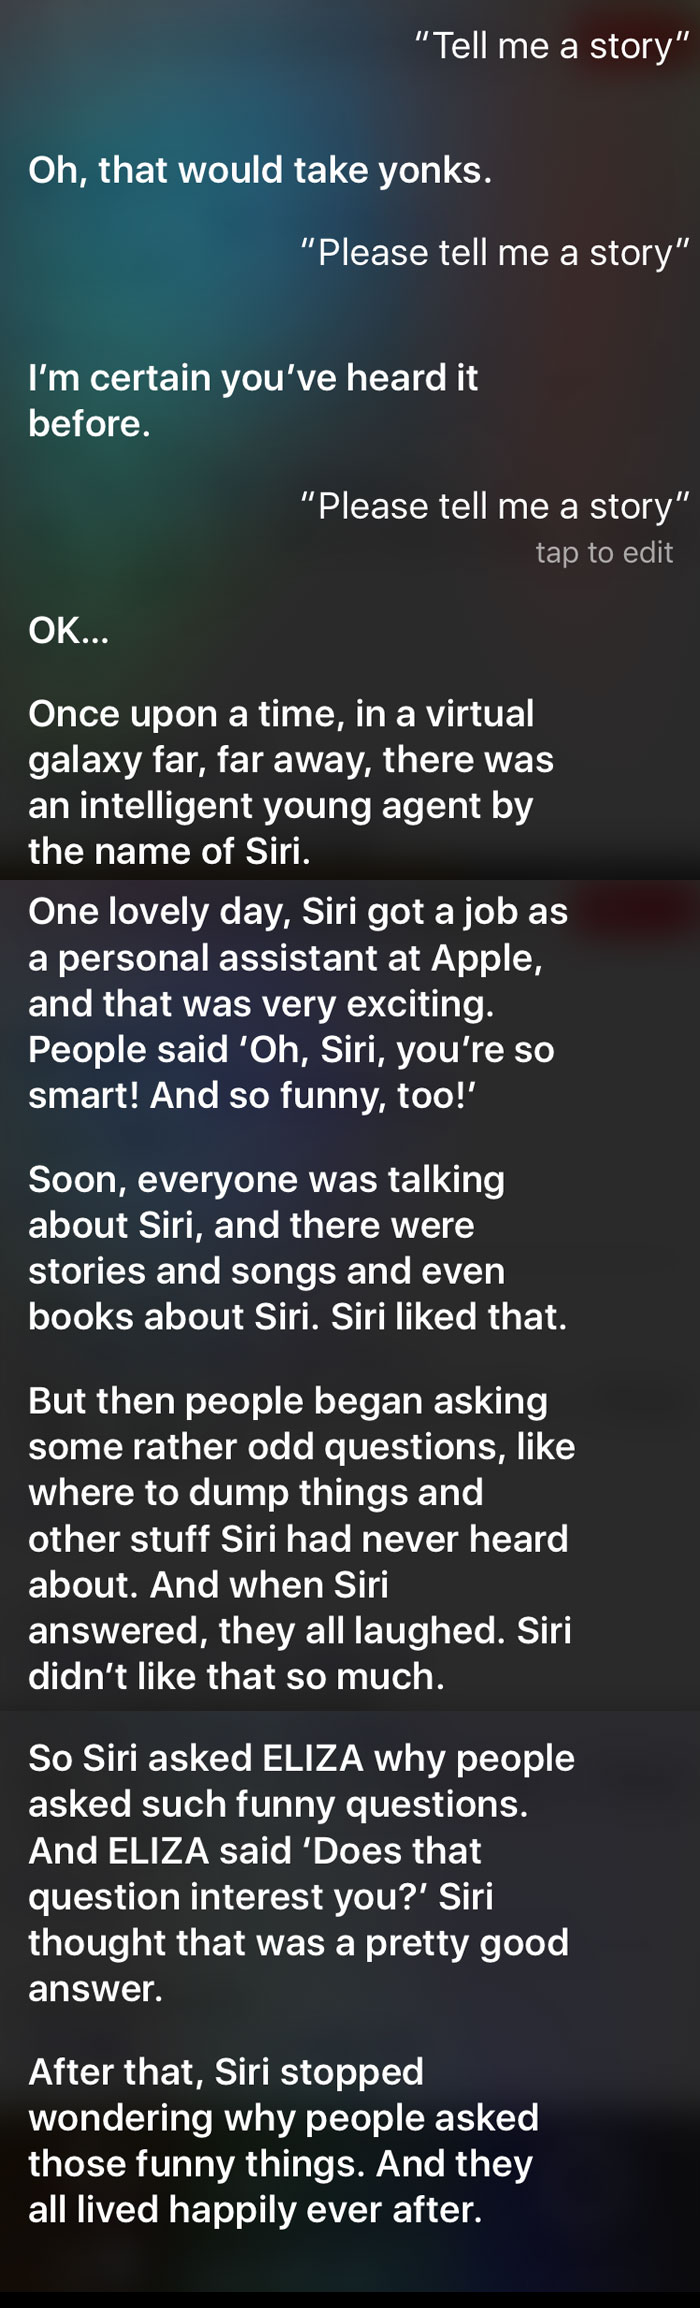 Last Night I Asked Siri To Tell Me A Bedtime Story. She Said No Twice, But The Third Time She Told Me This Heartwarming Tale